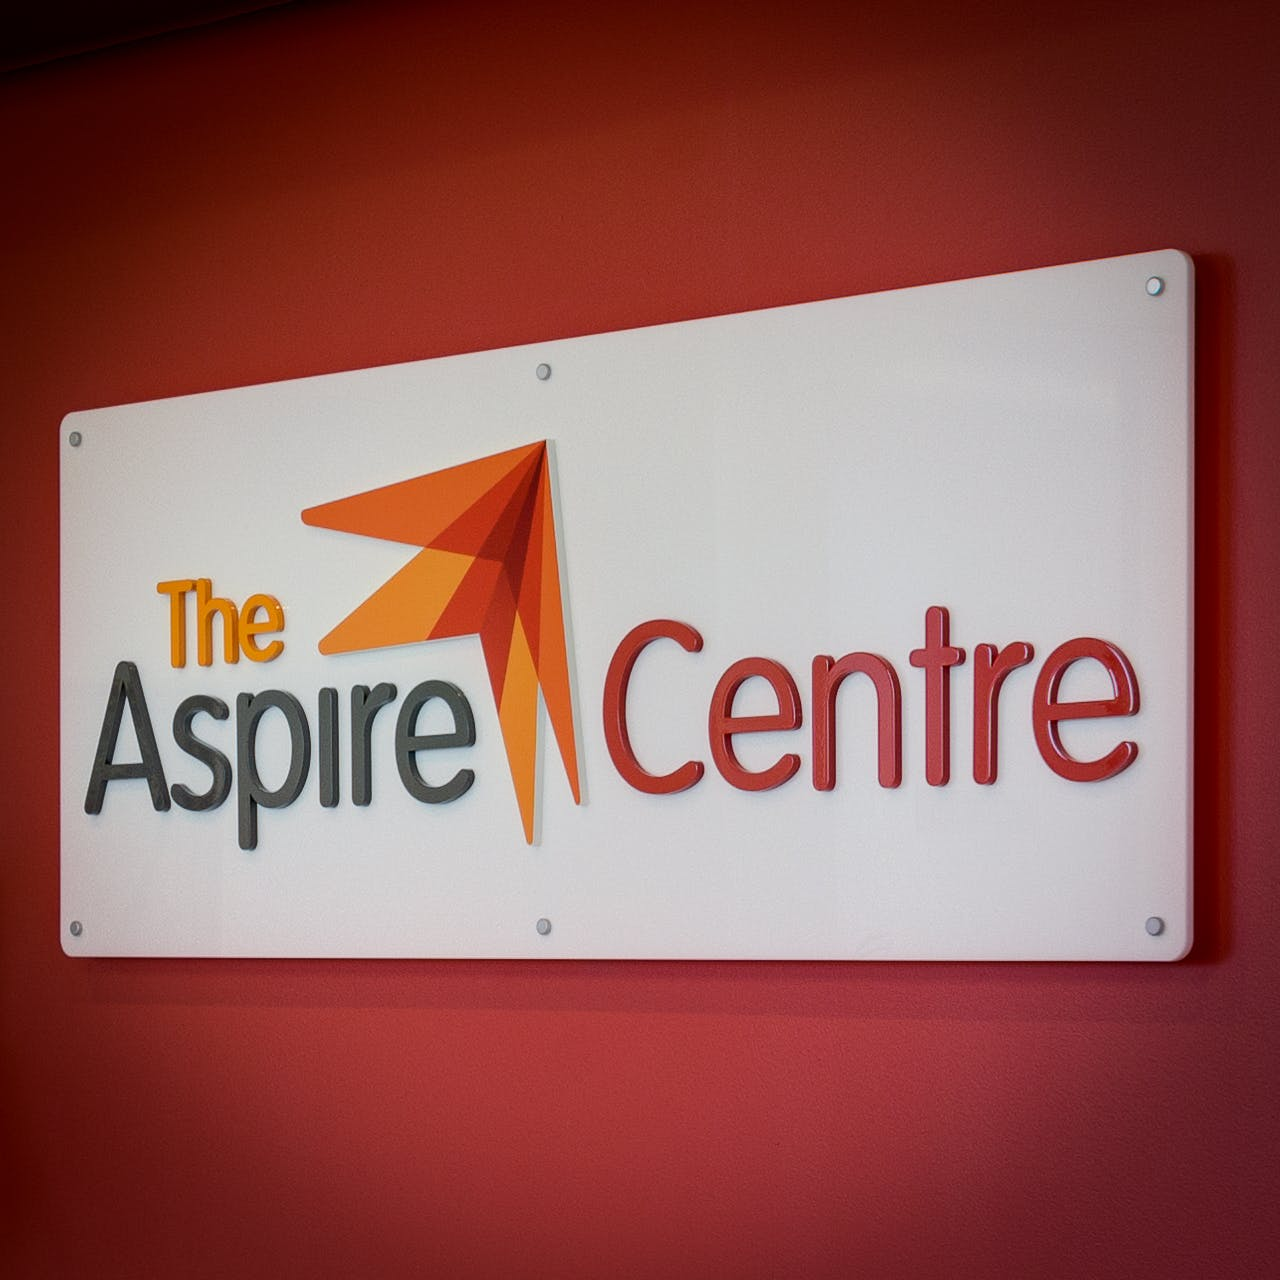 Office 12, serviced office at The Aspire Centre, image 11